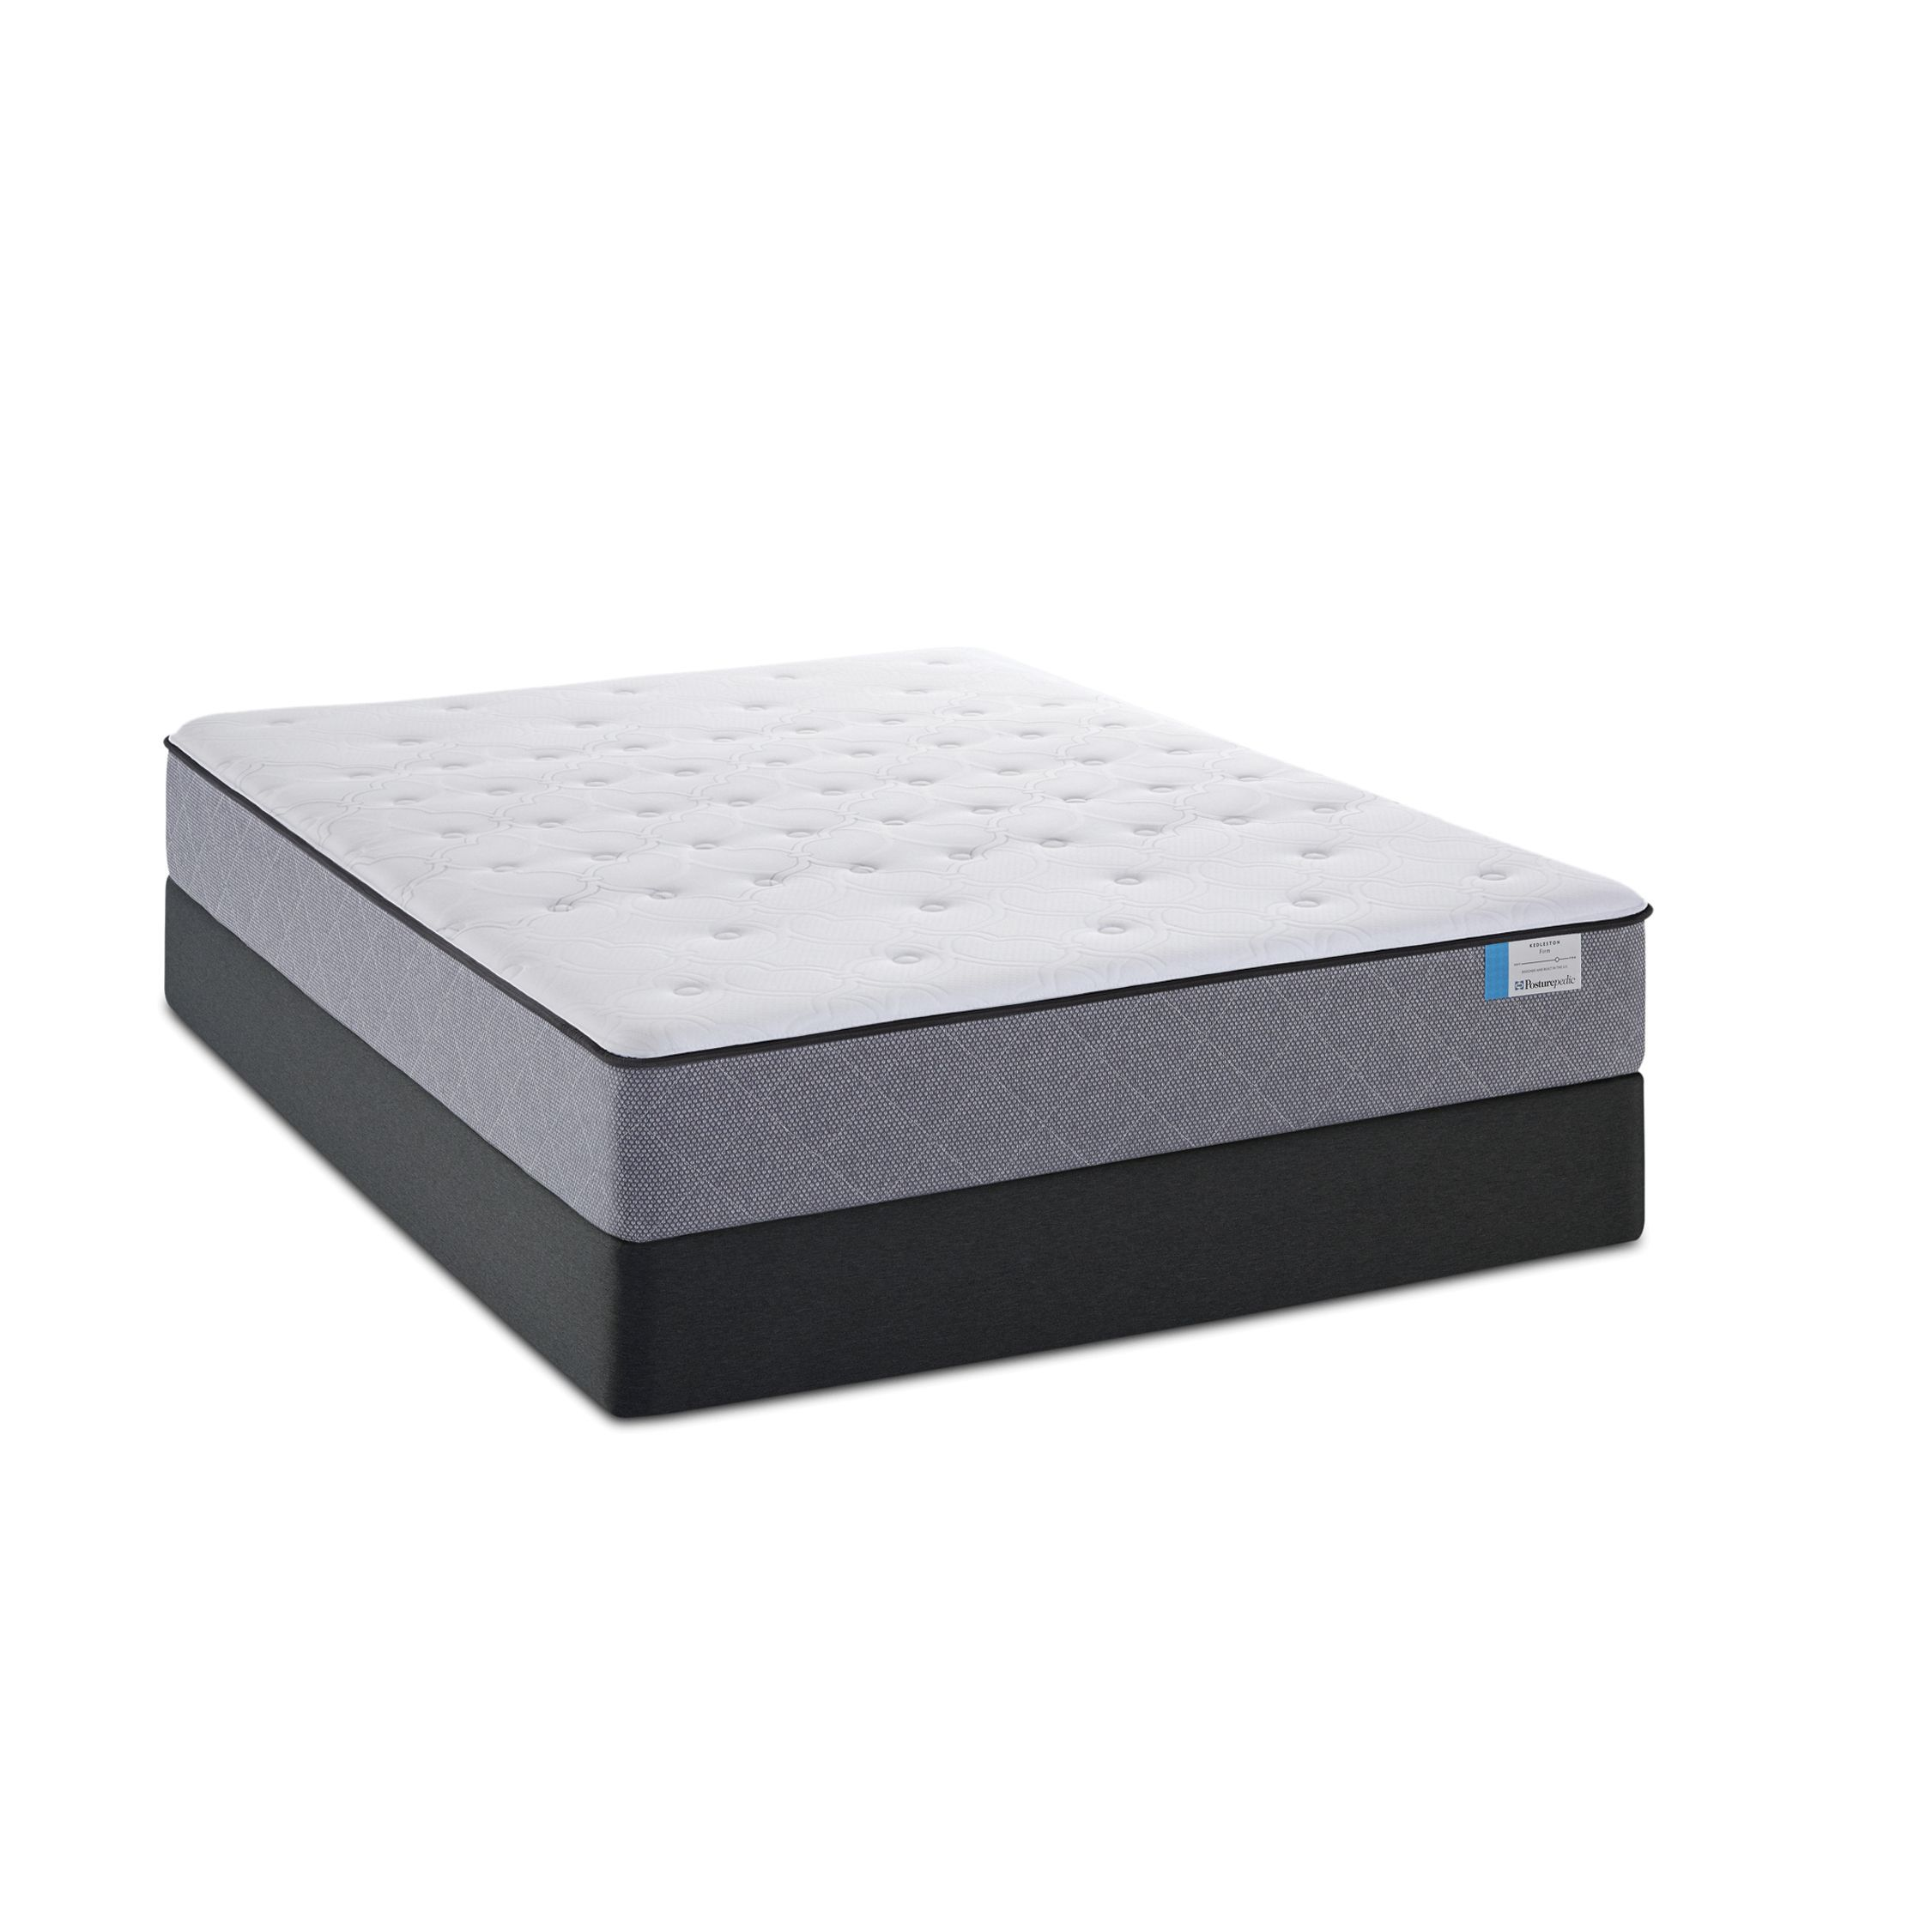 mattressrice images sizes king pricefull setsealy posturepedic mattress concept set nice size sealyosturepedic of full sealy